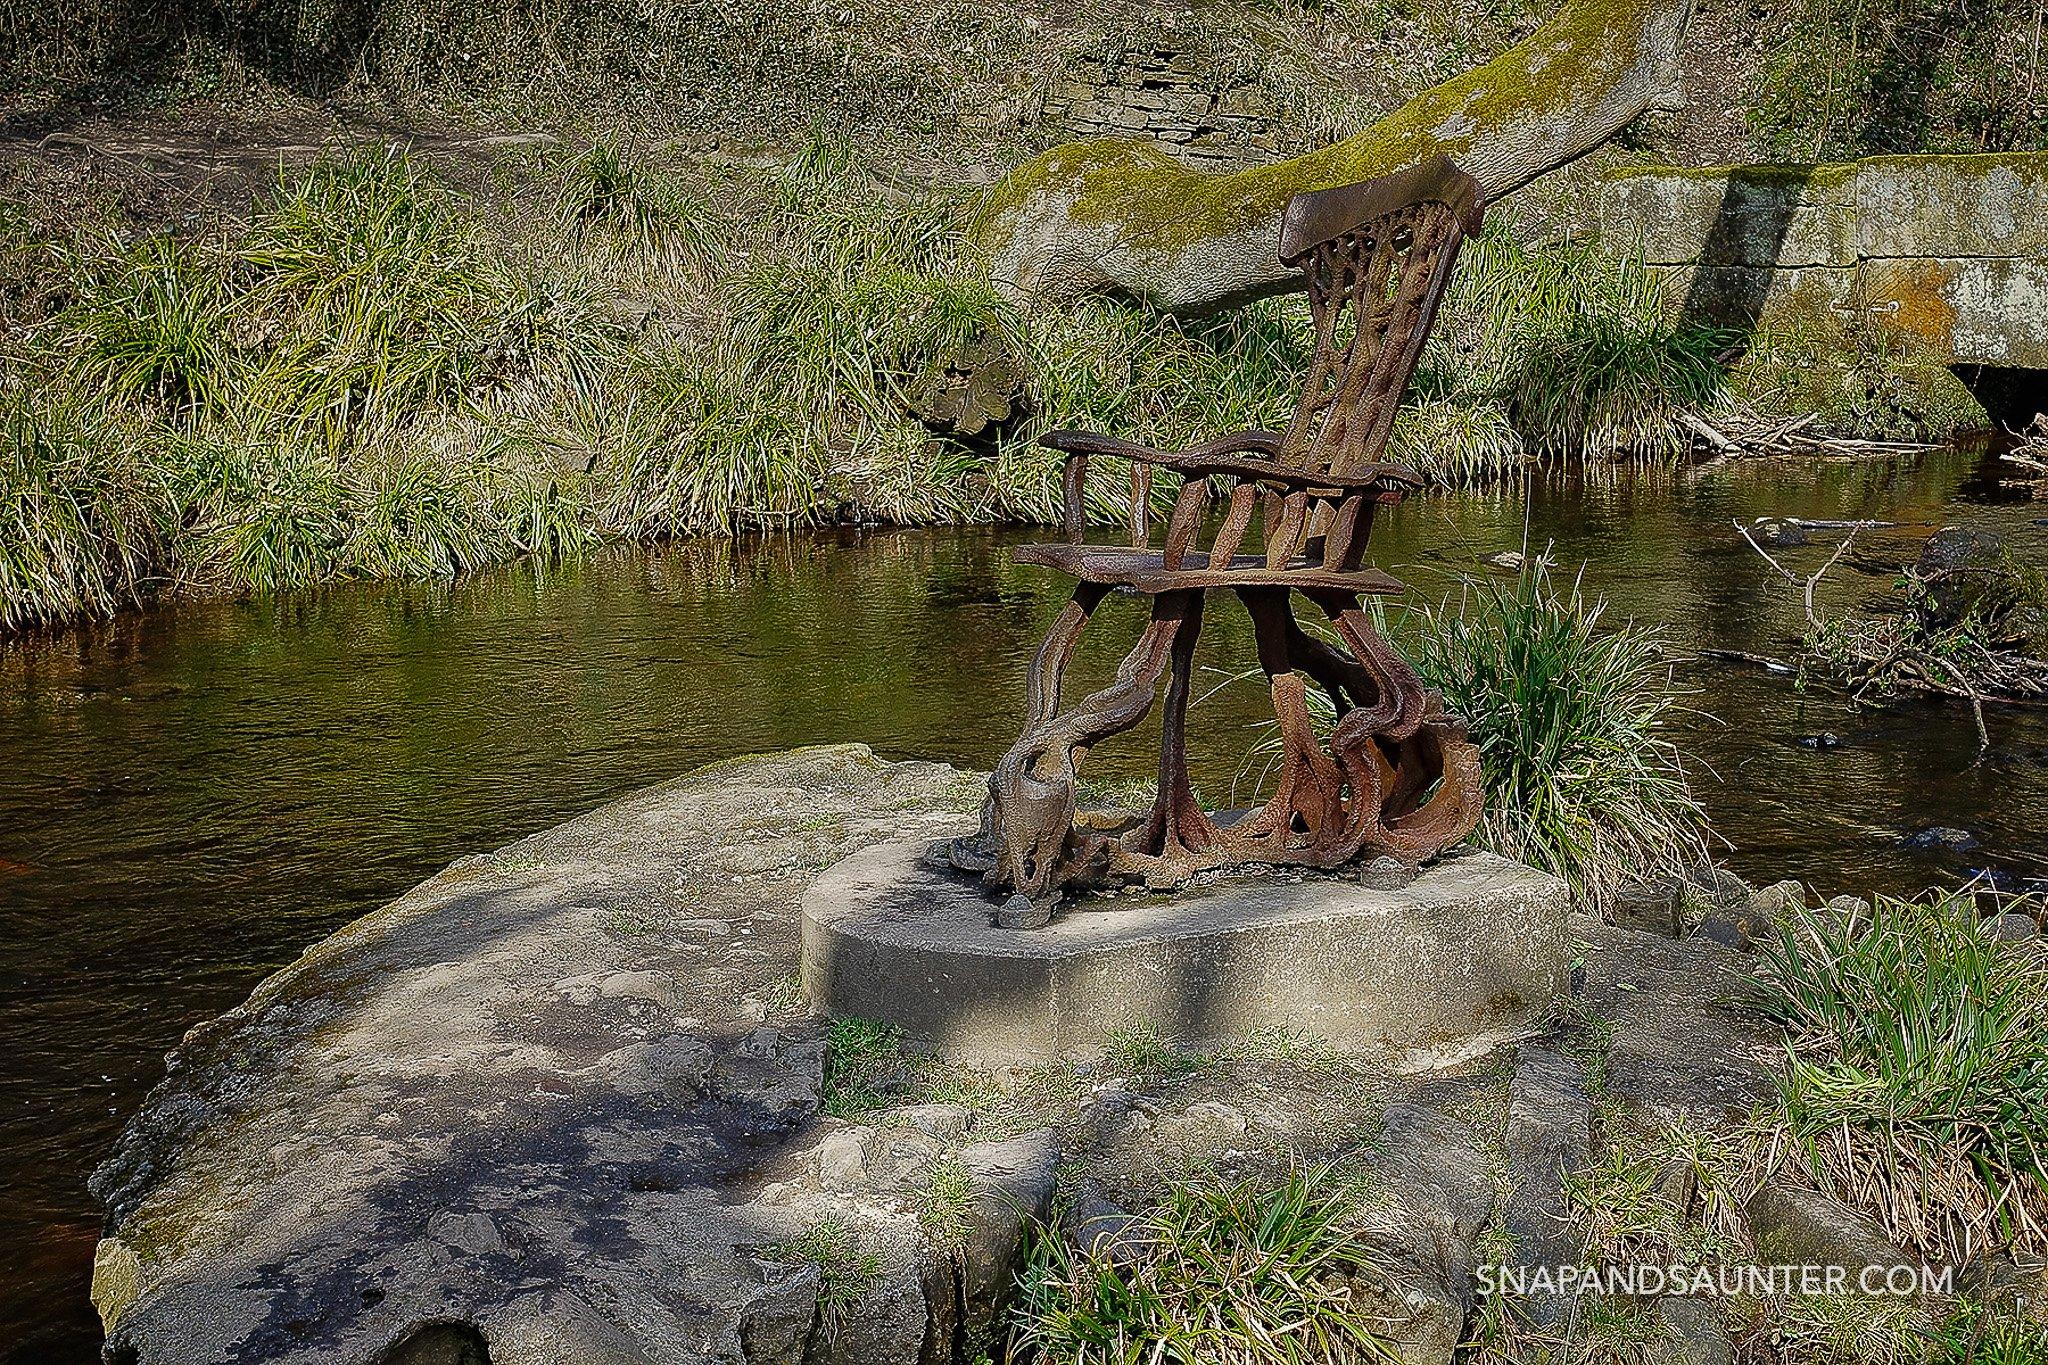 Iron Chair at Rivelin Valley in Sheffield